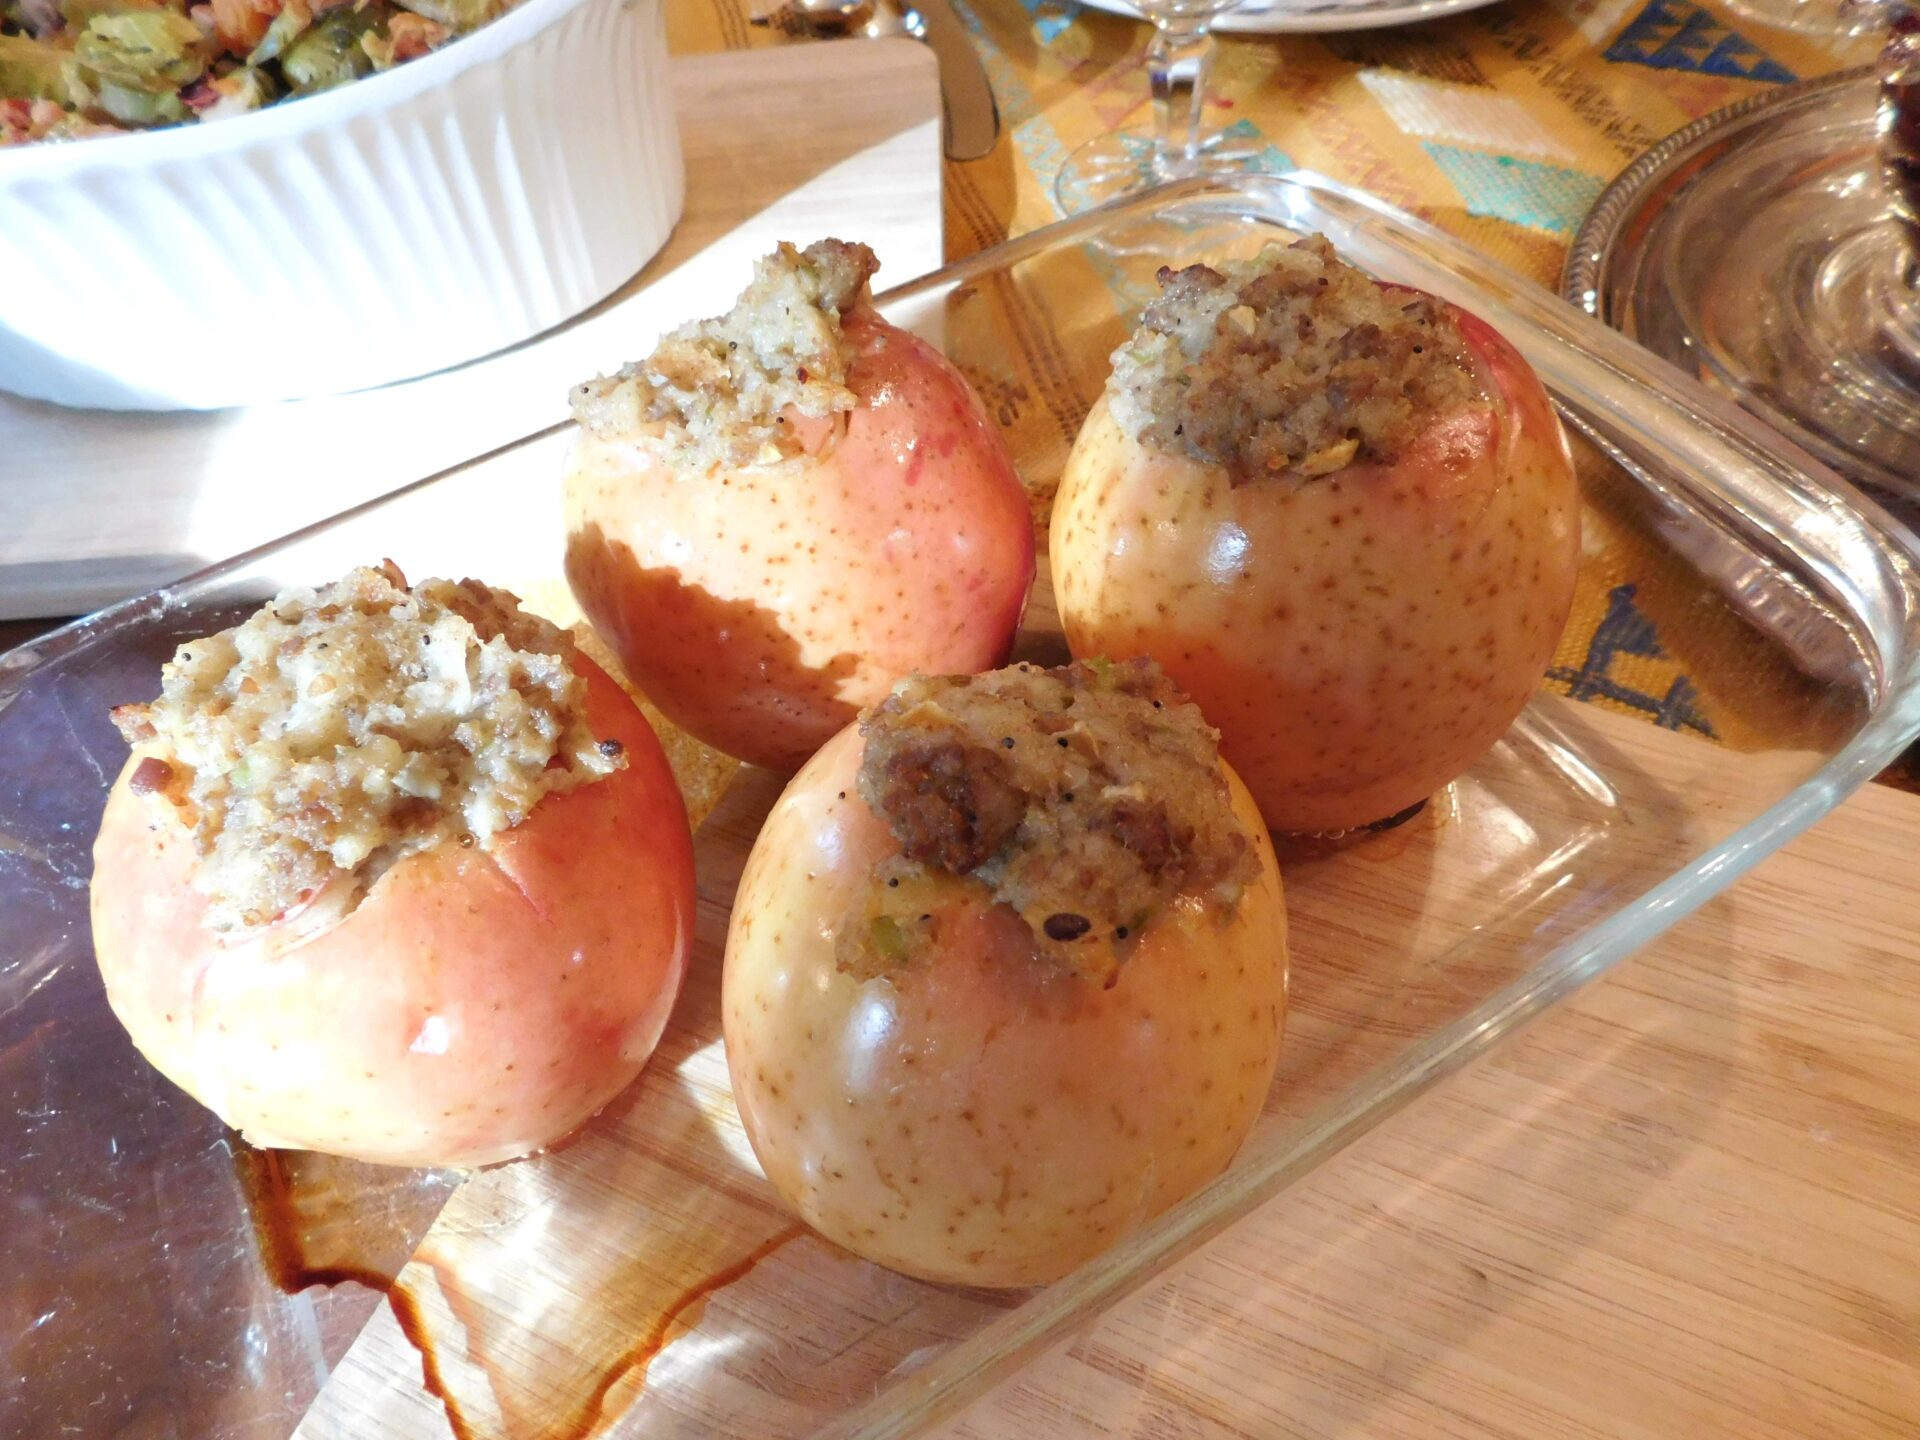 stuffedapples-dscn1478